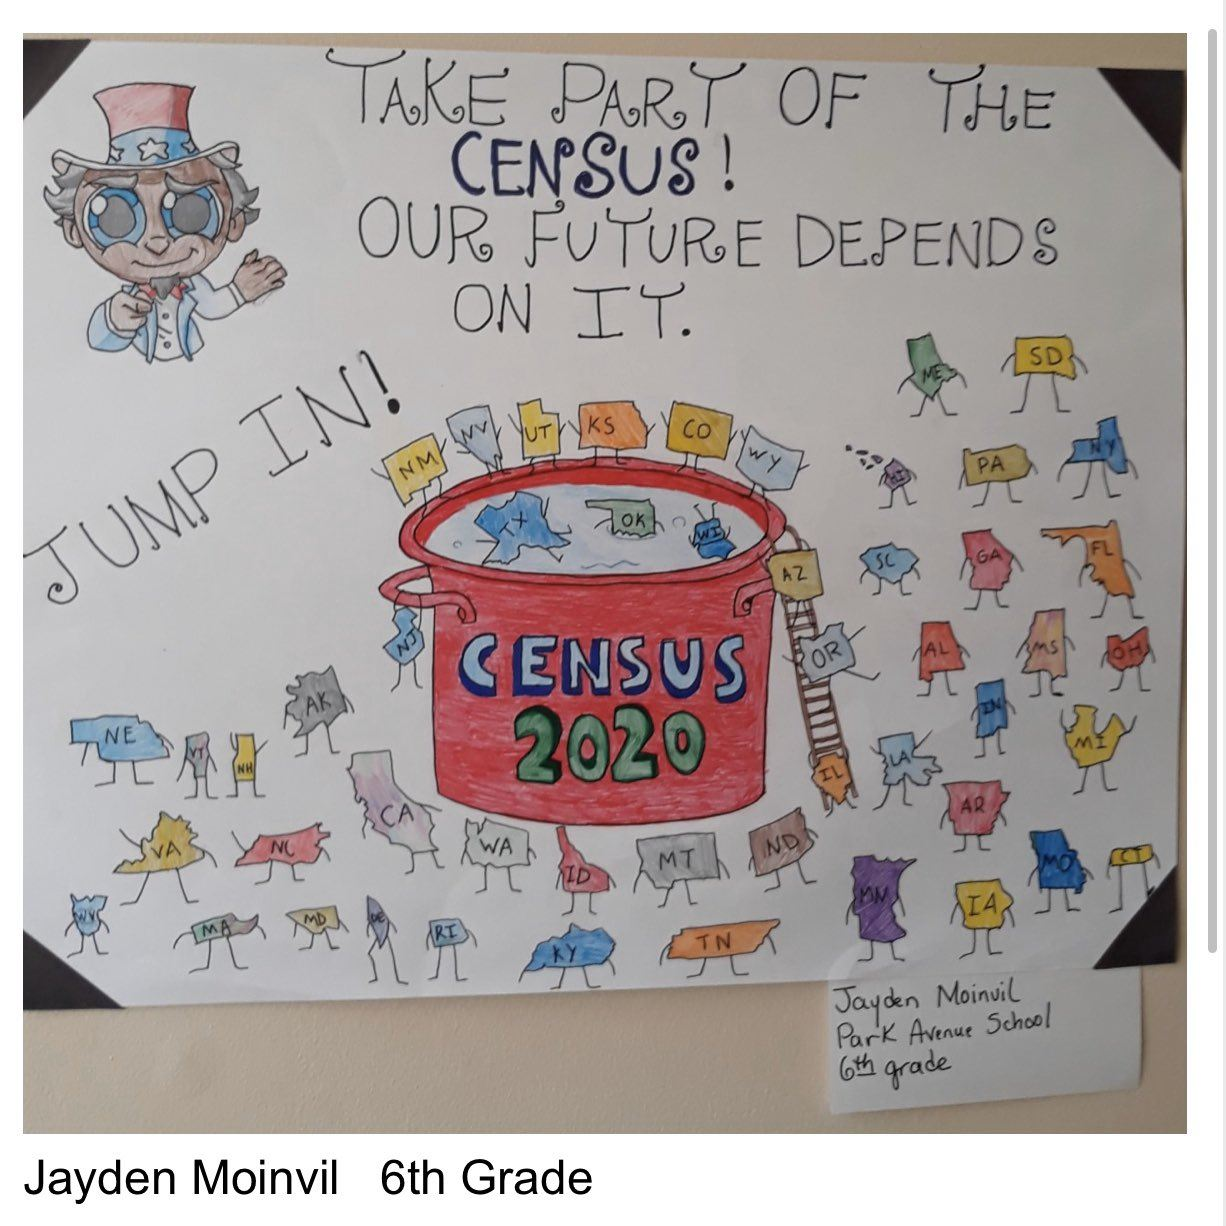 District Wide Census 2020 Creative Arts Contest Winner